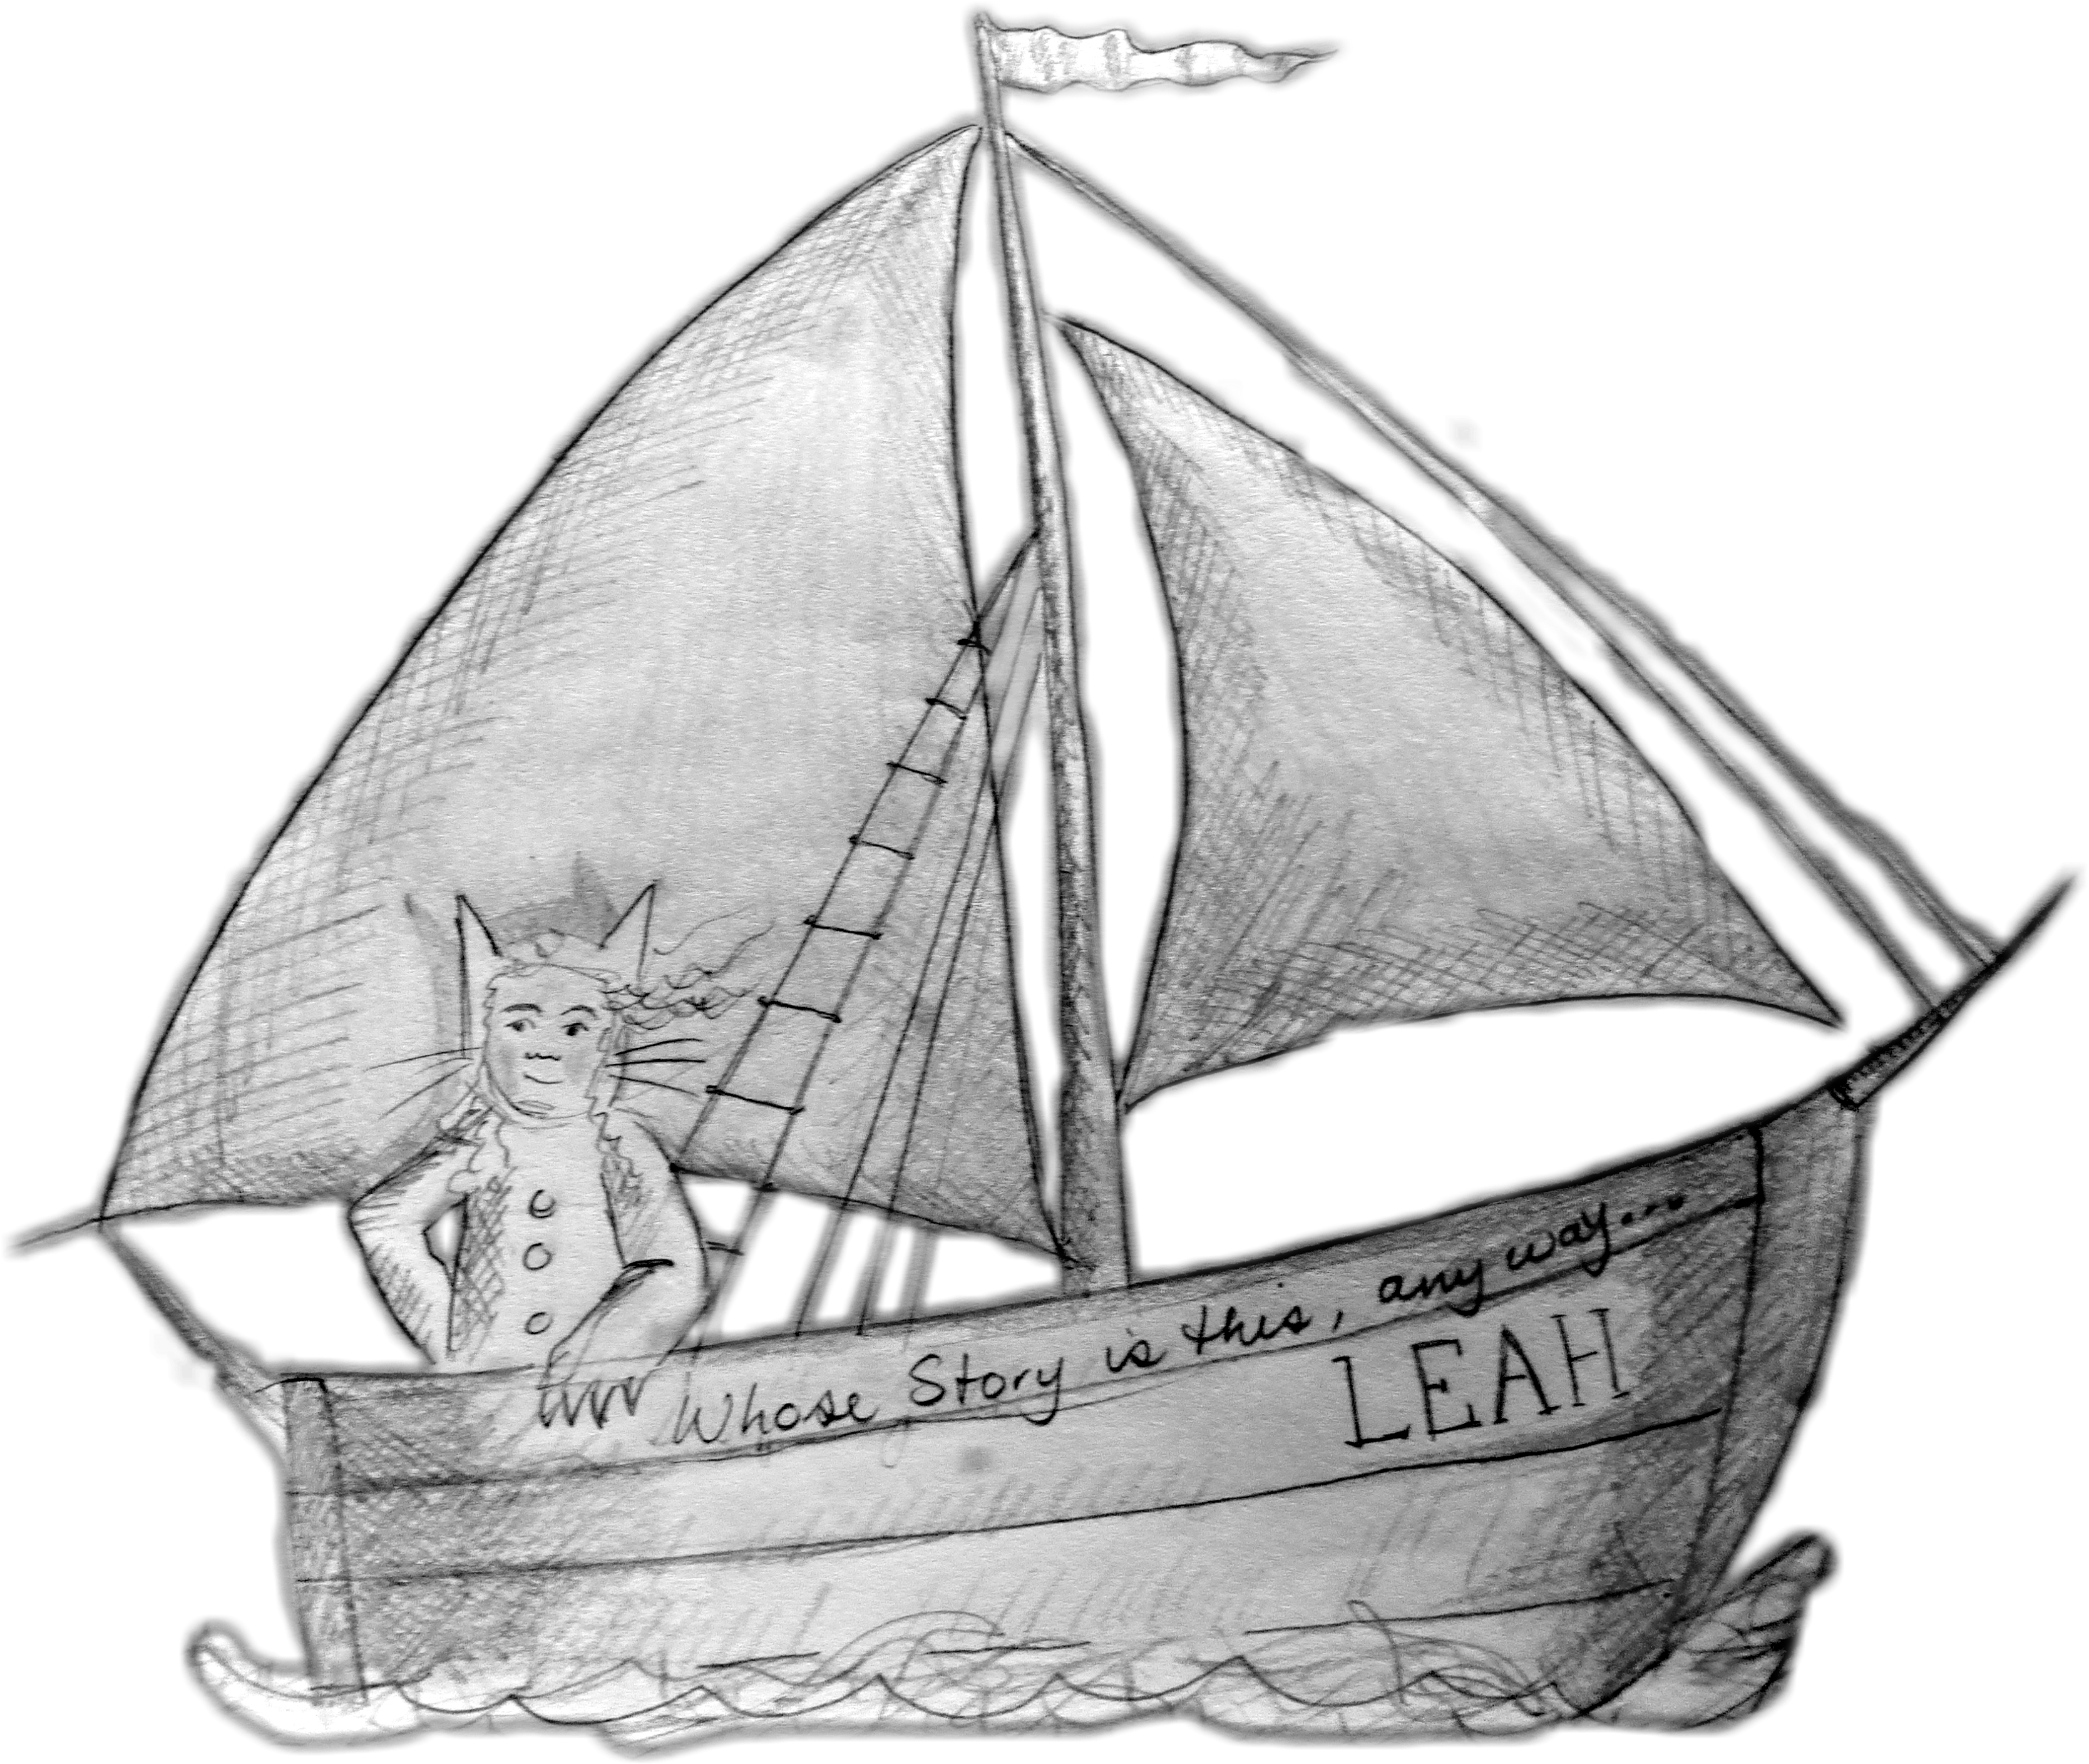 Caravel drawing easy. I am intermittence thirty